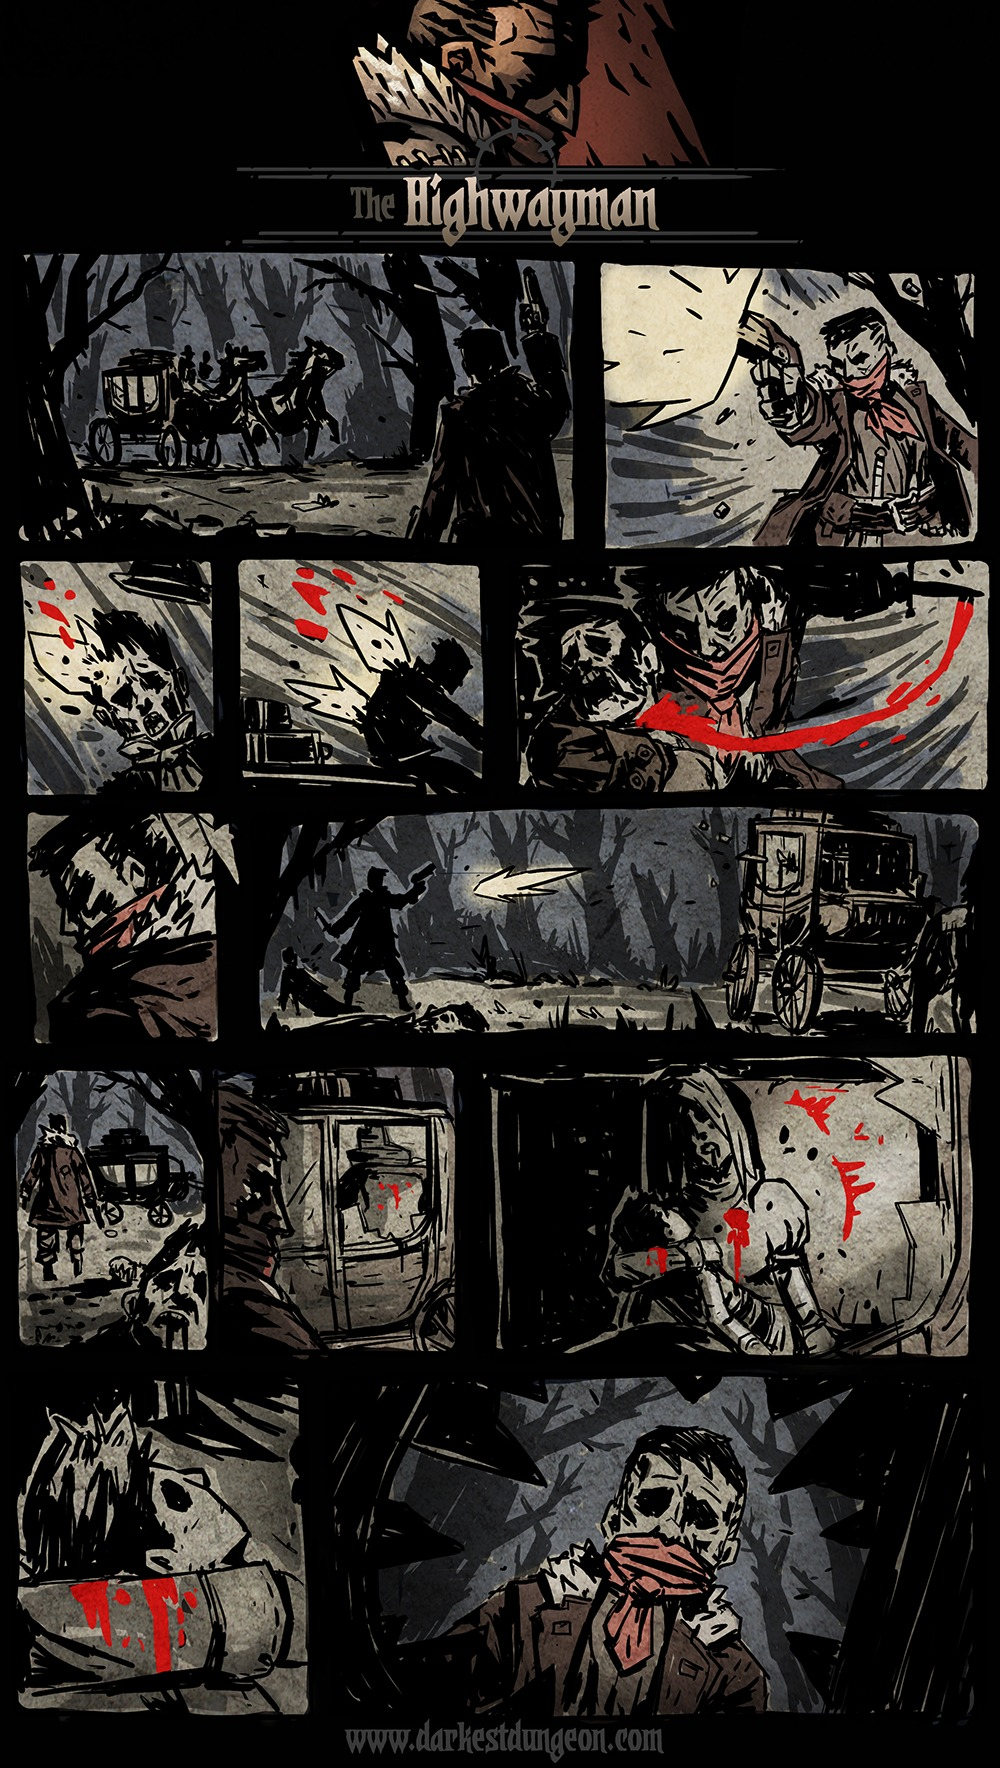 Darkest Dungeon Presents - The Highwayman